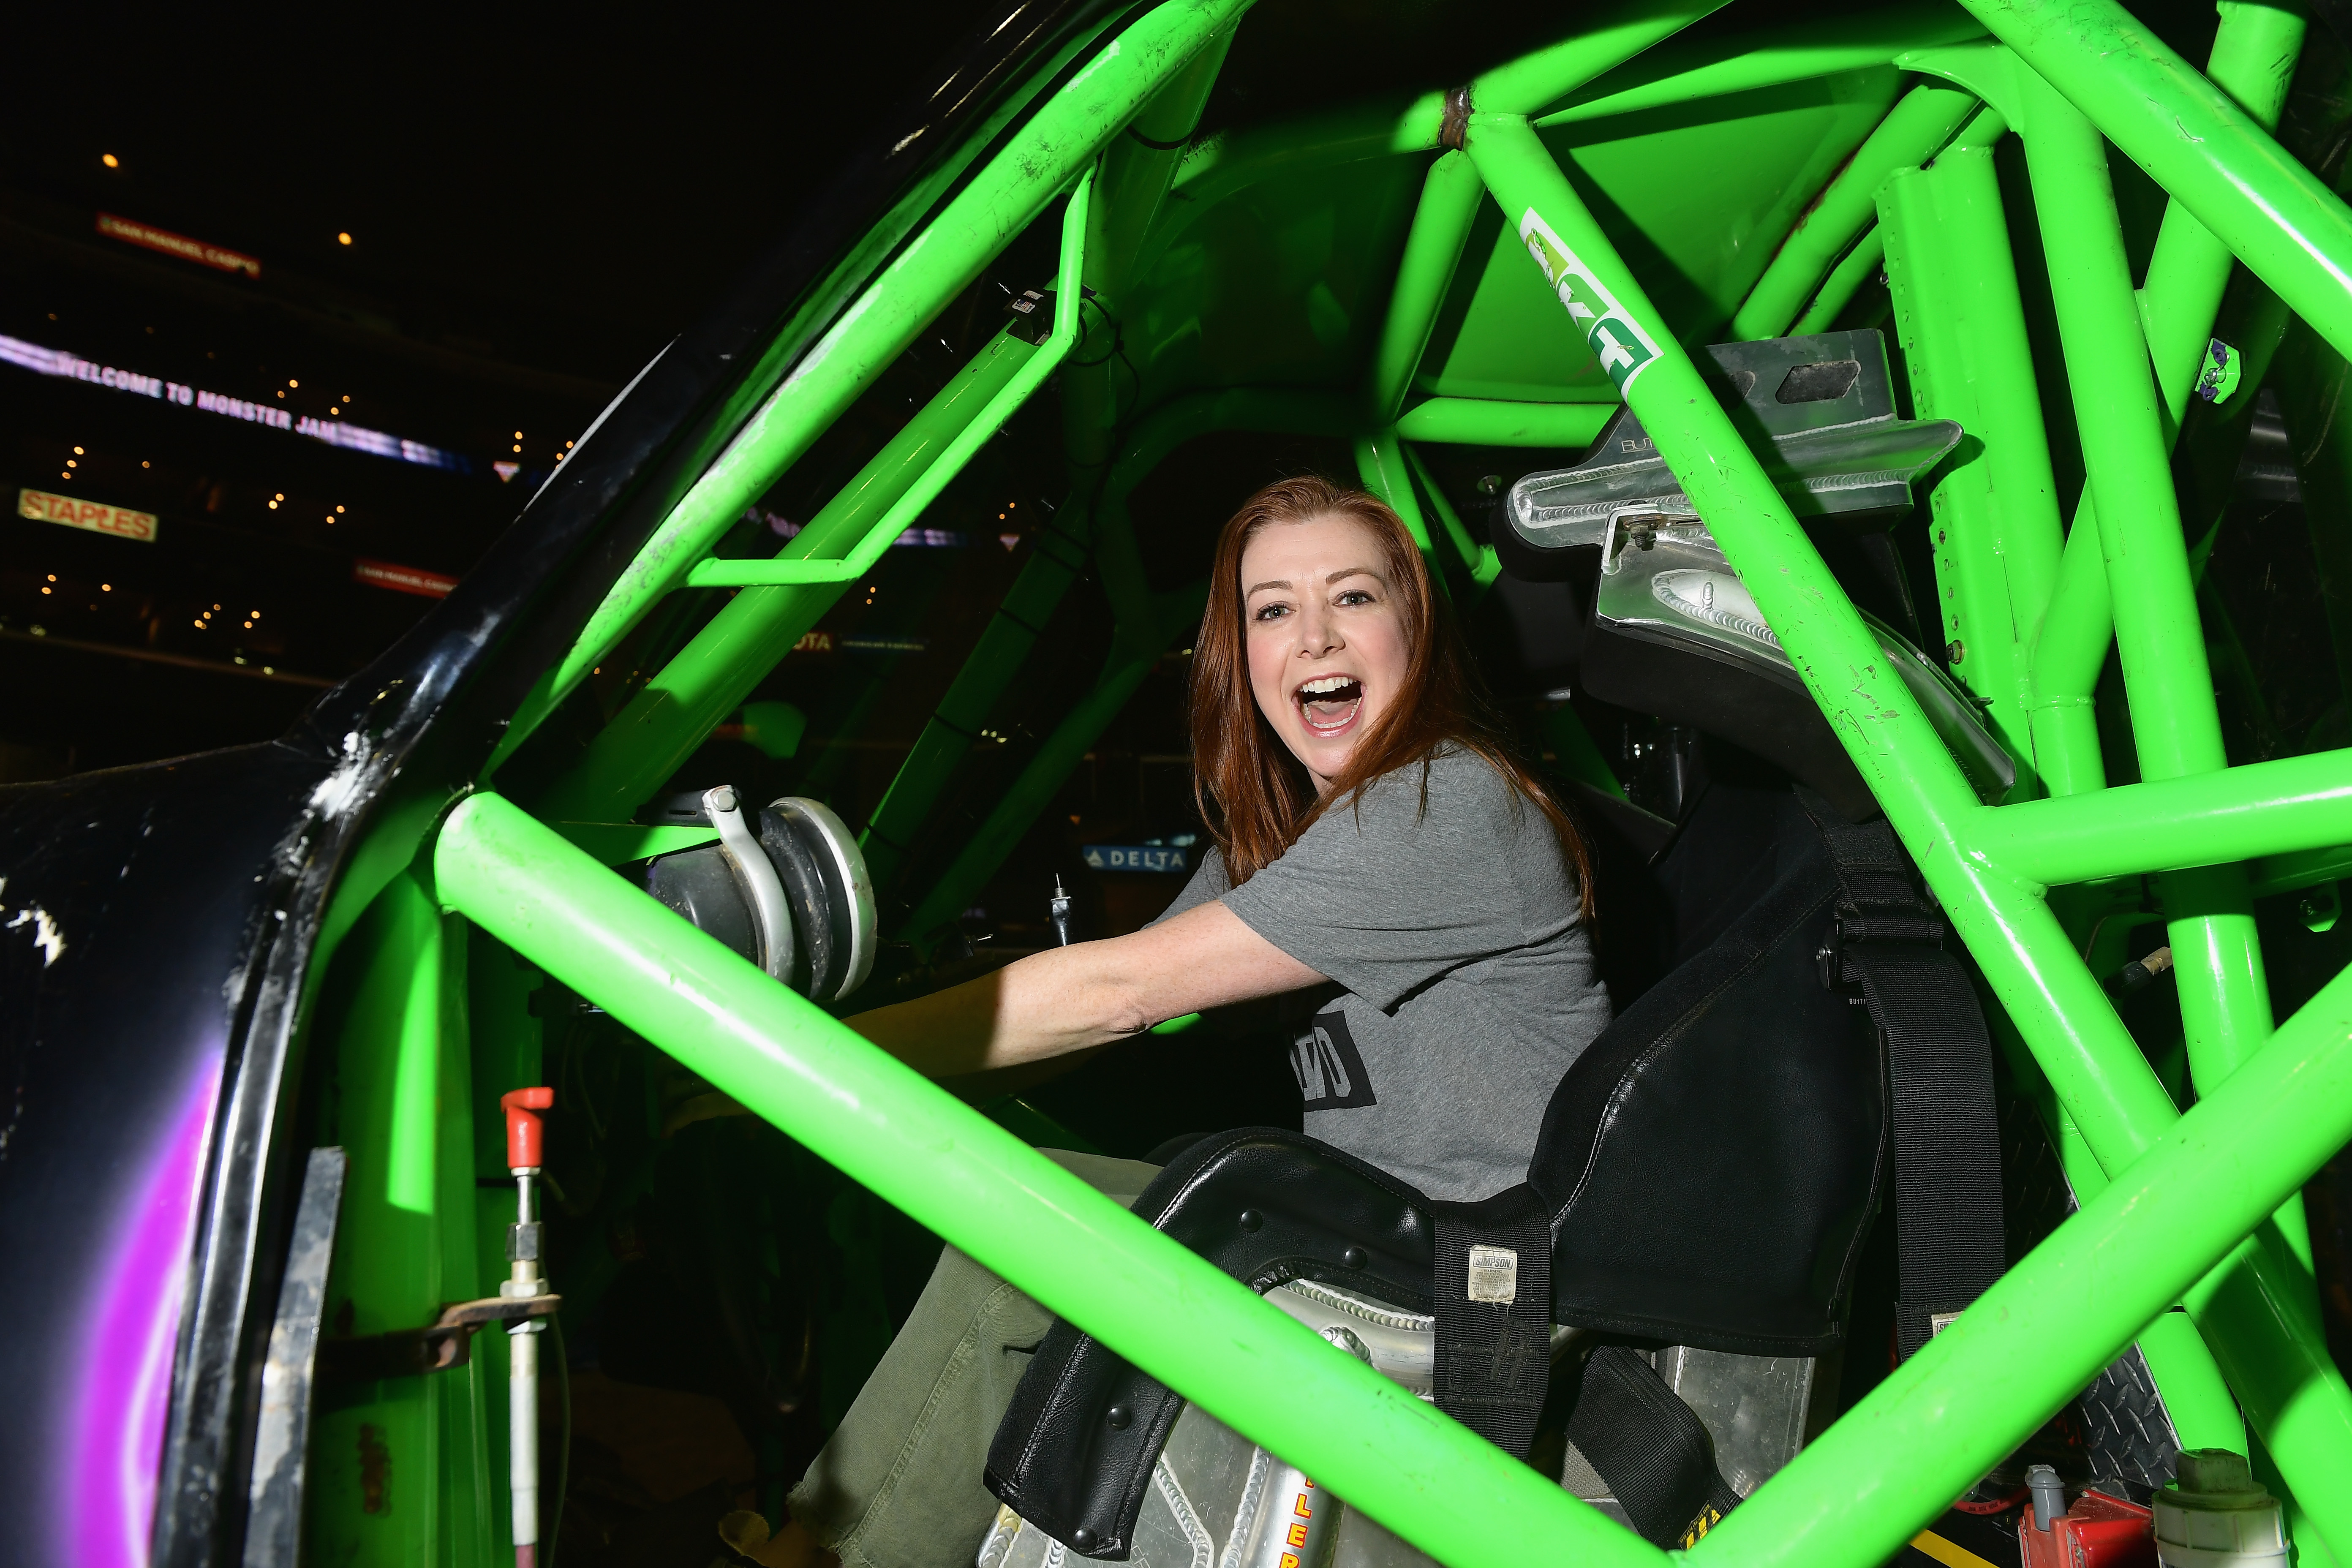 Alyson Hannigan attends Monster Jam at STAPLES Center in Los Angeles on August 18, 2018.